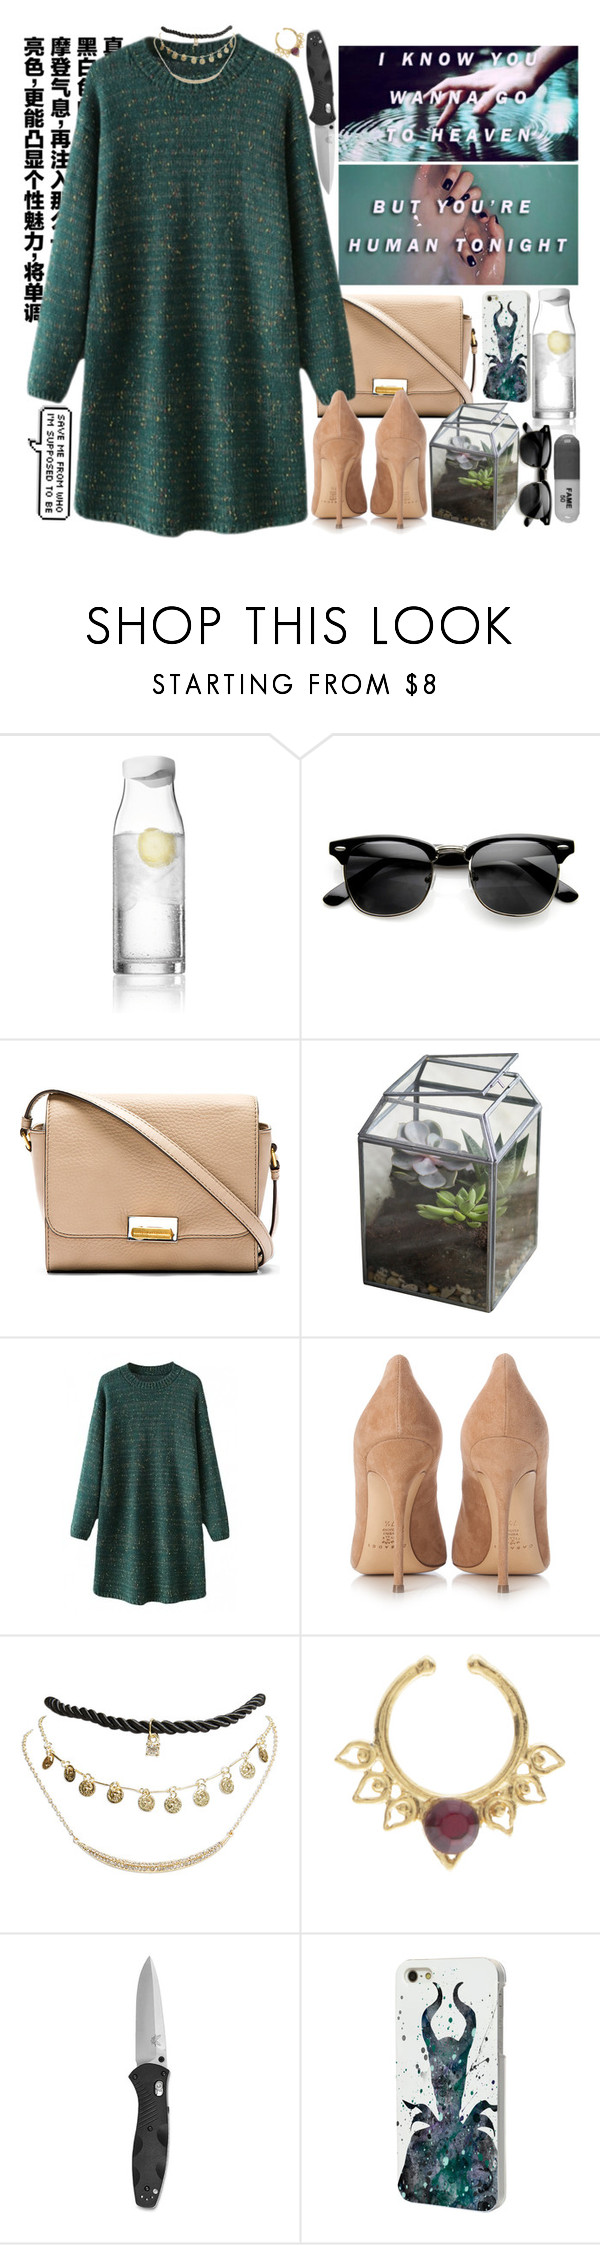 """""""Young God- Halsey // TAG"""" by yazzyf ❤ liked on Polyvore featuring Menu, Marc by Marc Jacobs, Dot & Bo, Casadei, Wet Seal and Disney"""